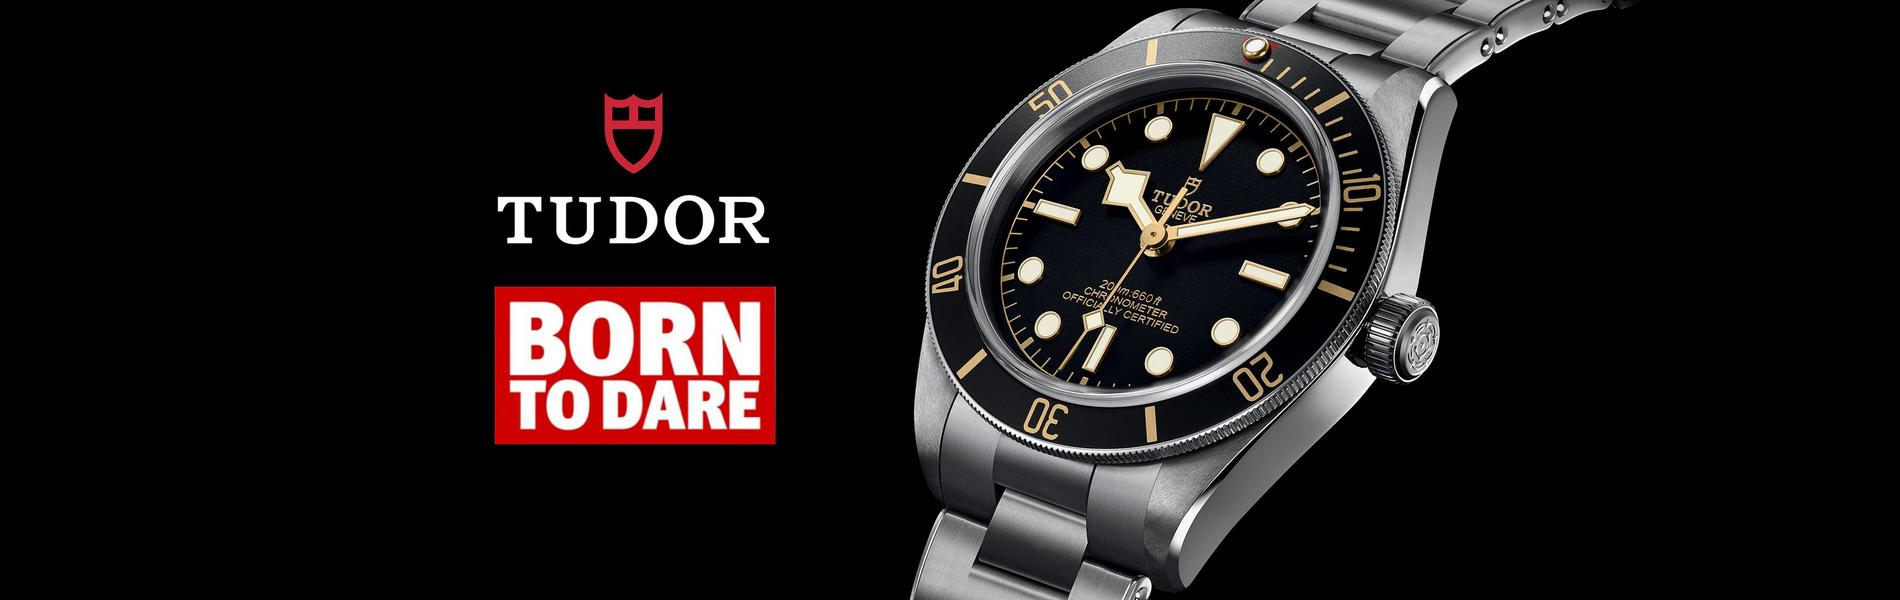 Tudor- Born To Dare